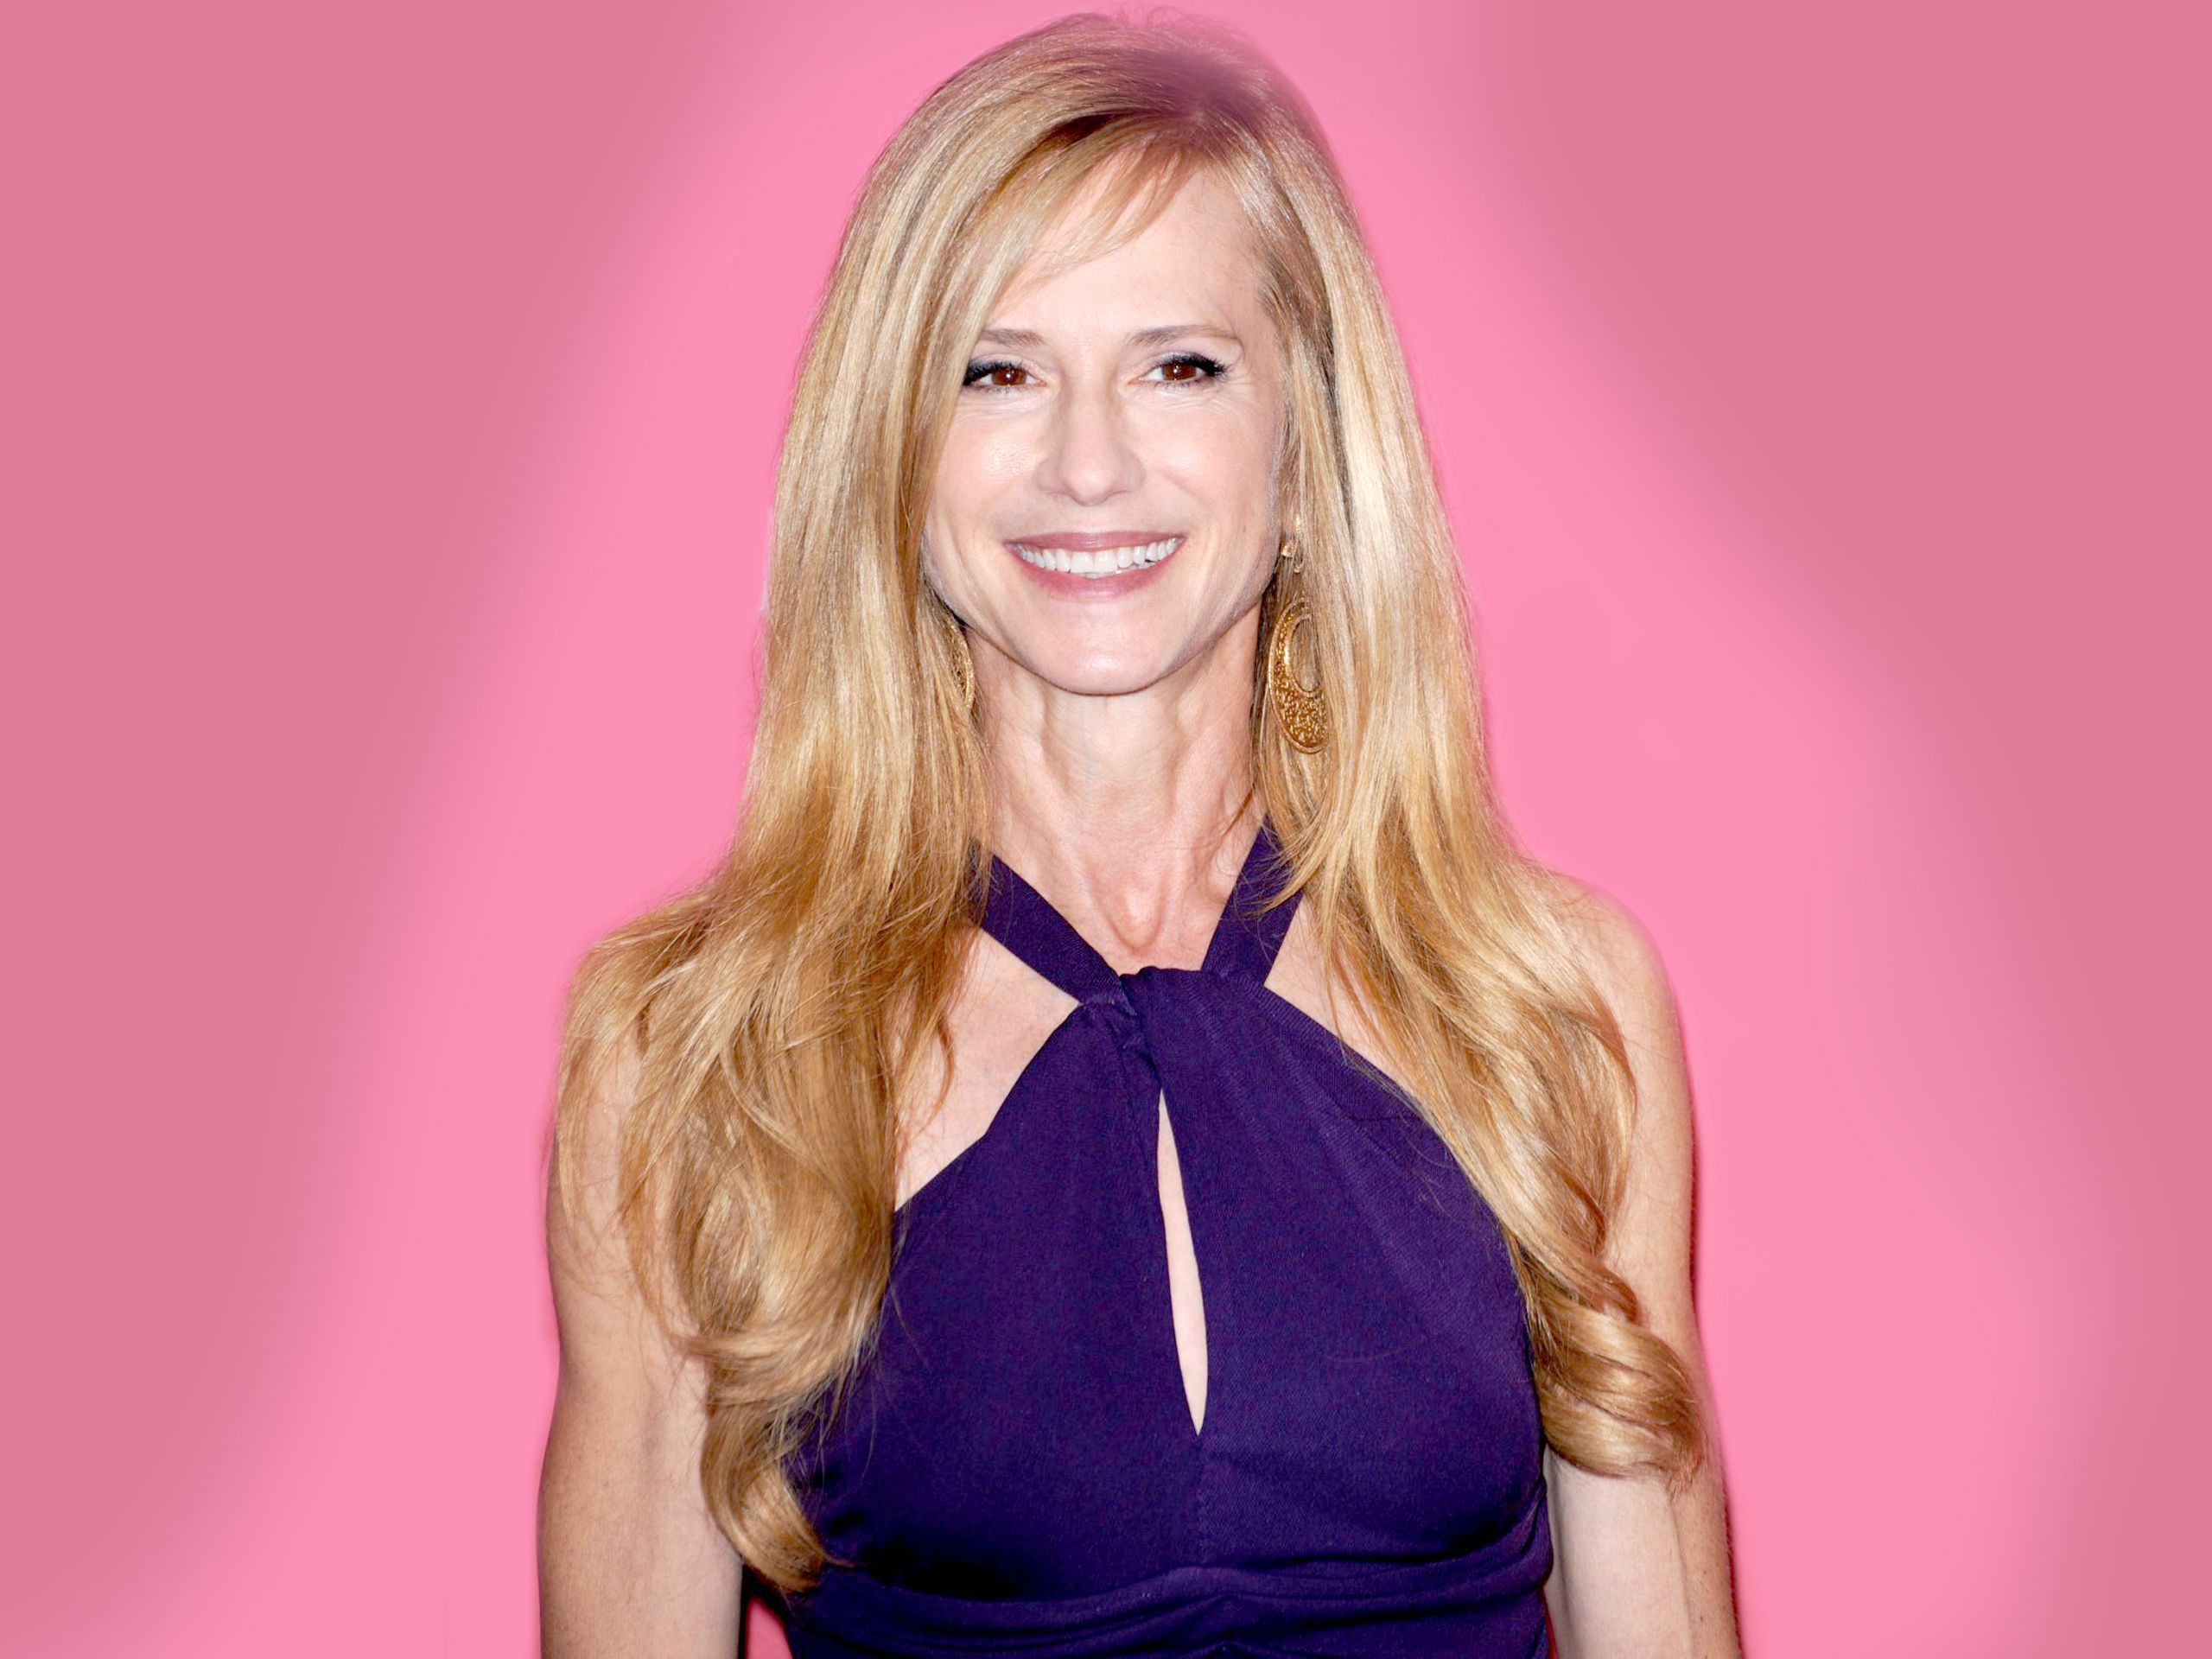 Holly hunter nude, topless pictures, playboy photos, sex scene uncensored